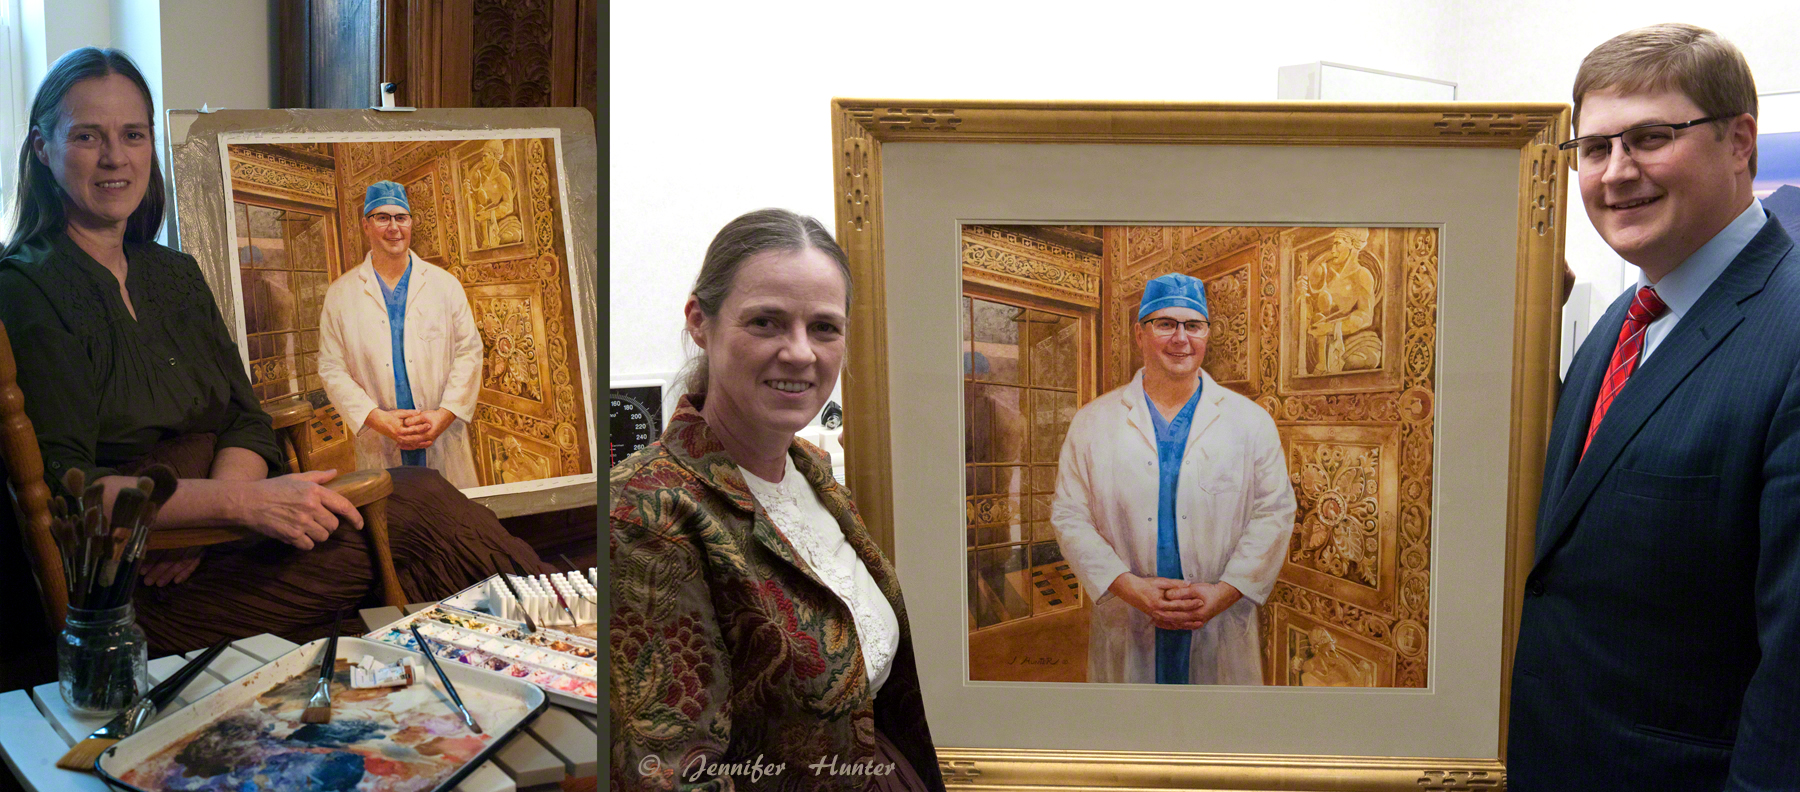 Jennifer Hunter and Dr Fogelson Portrait watercolor